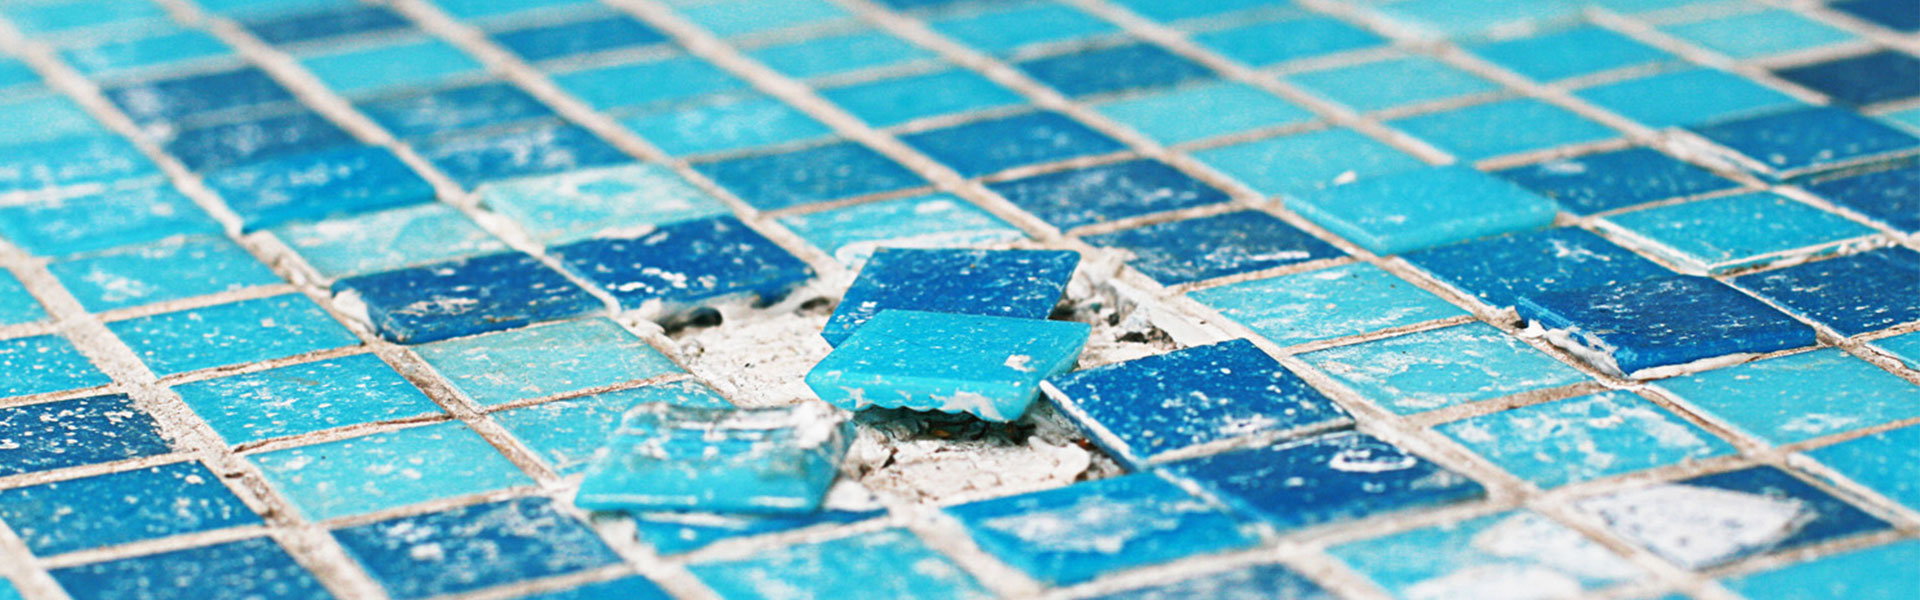 Swimming Pool Repair San Antonio, Texas